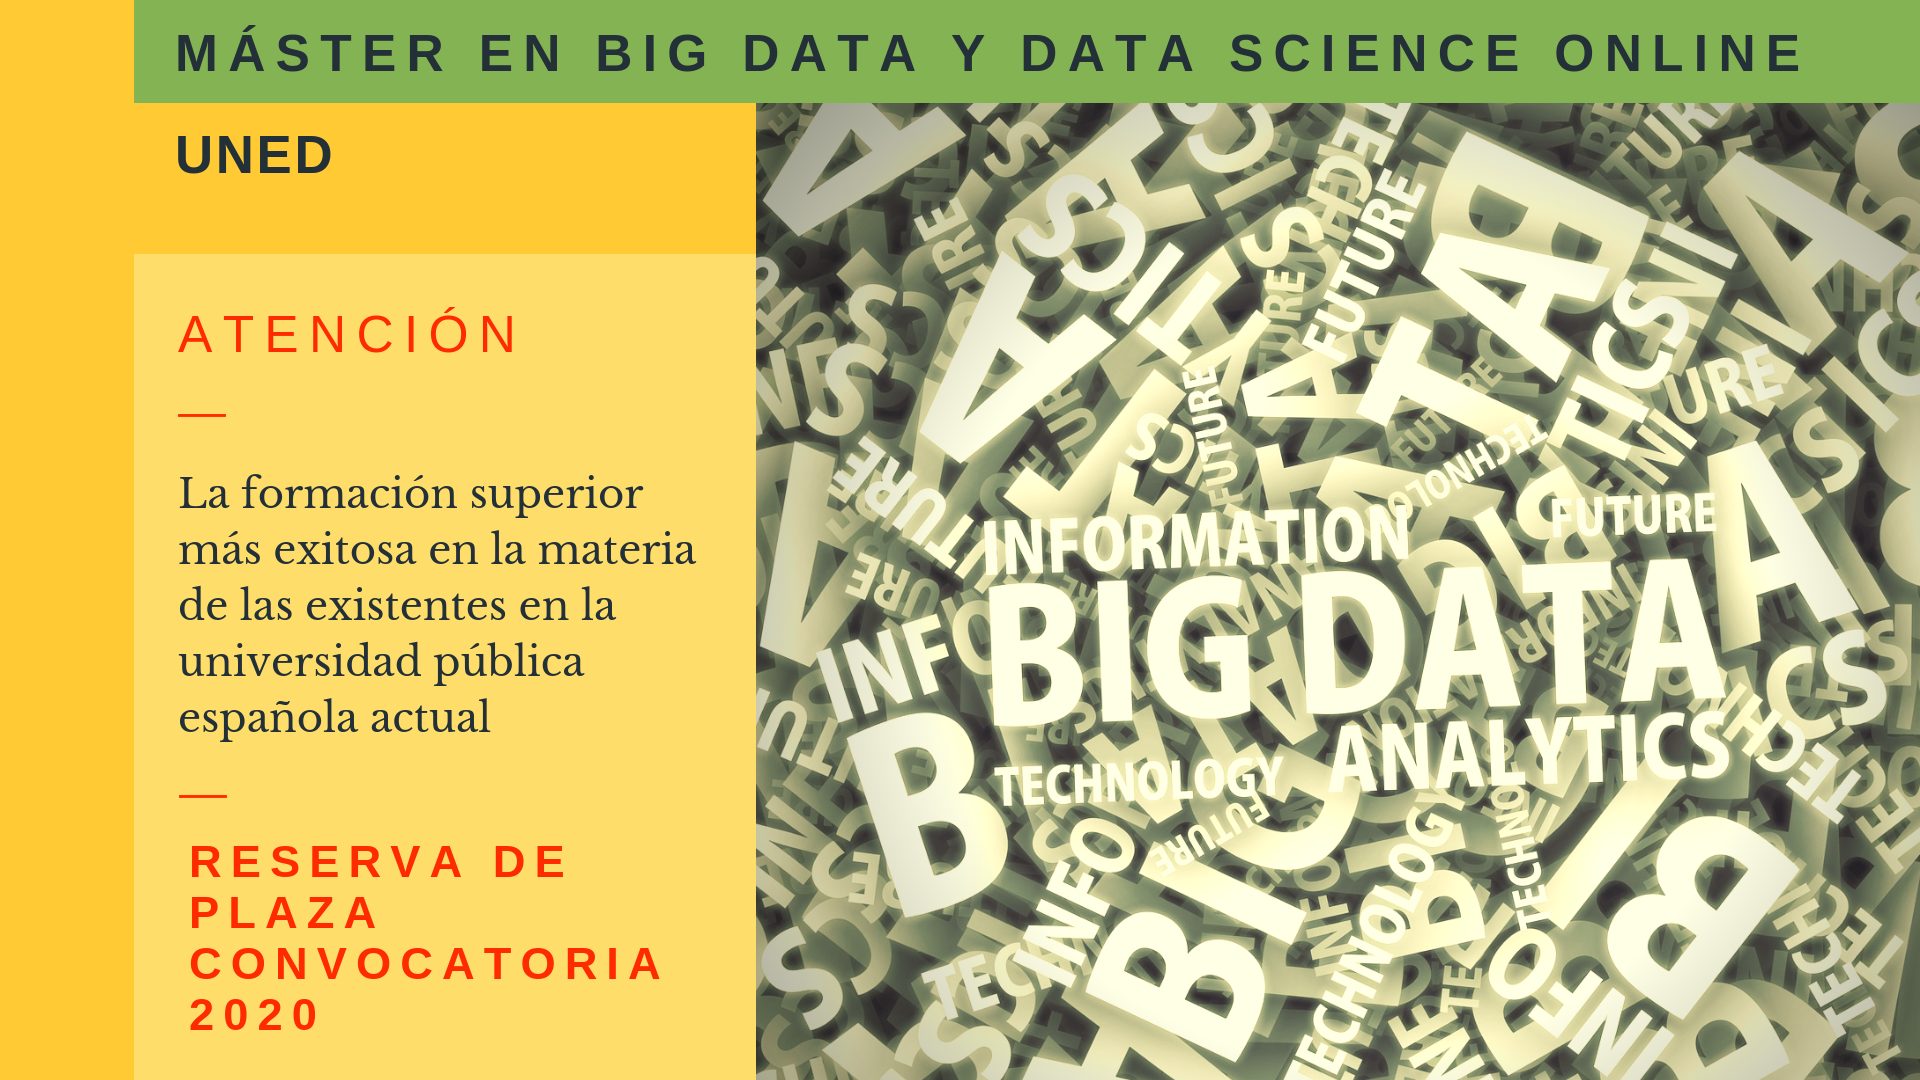 Máster en Big Data 2020